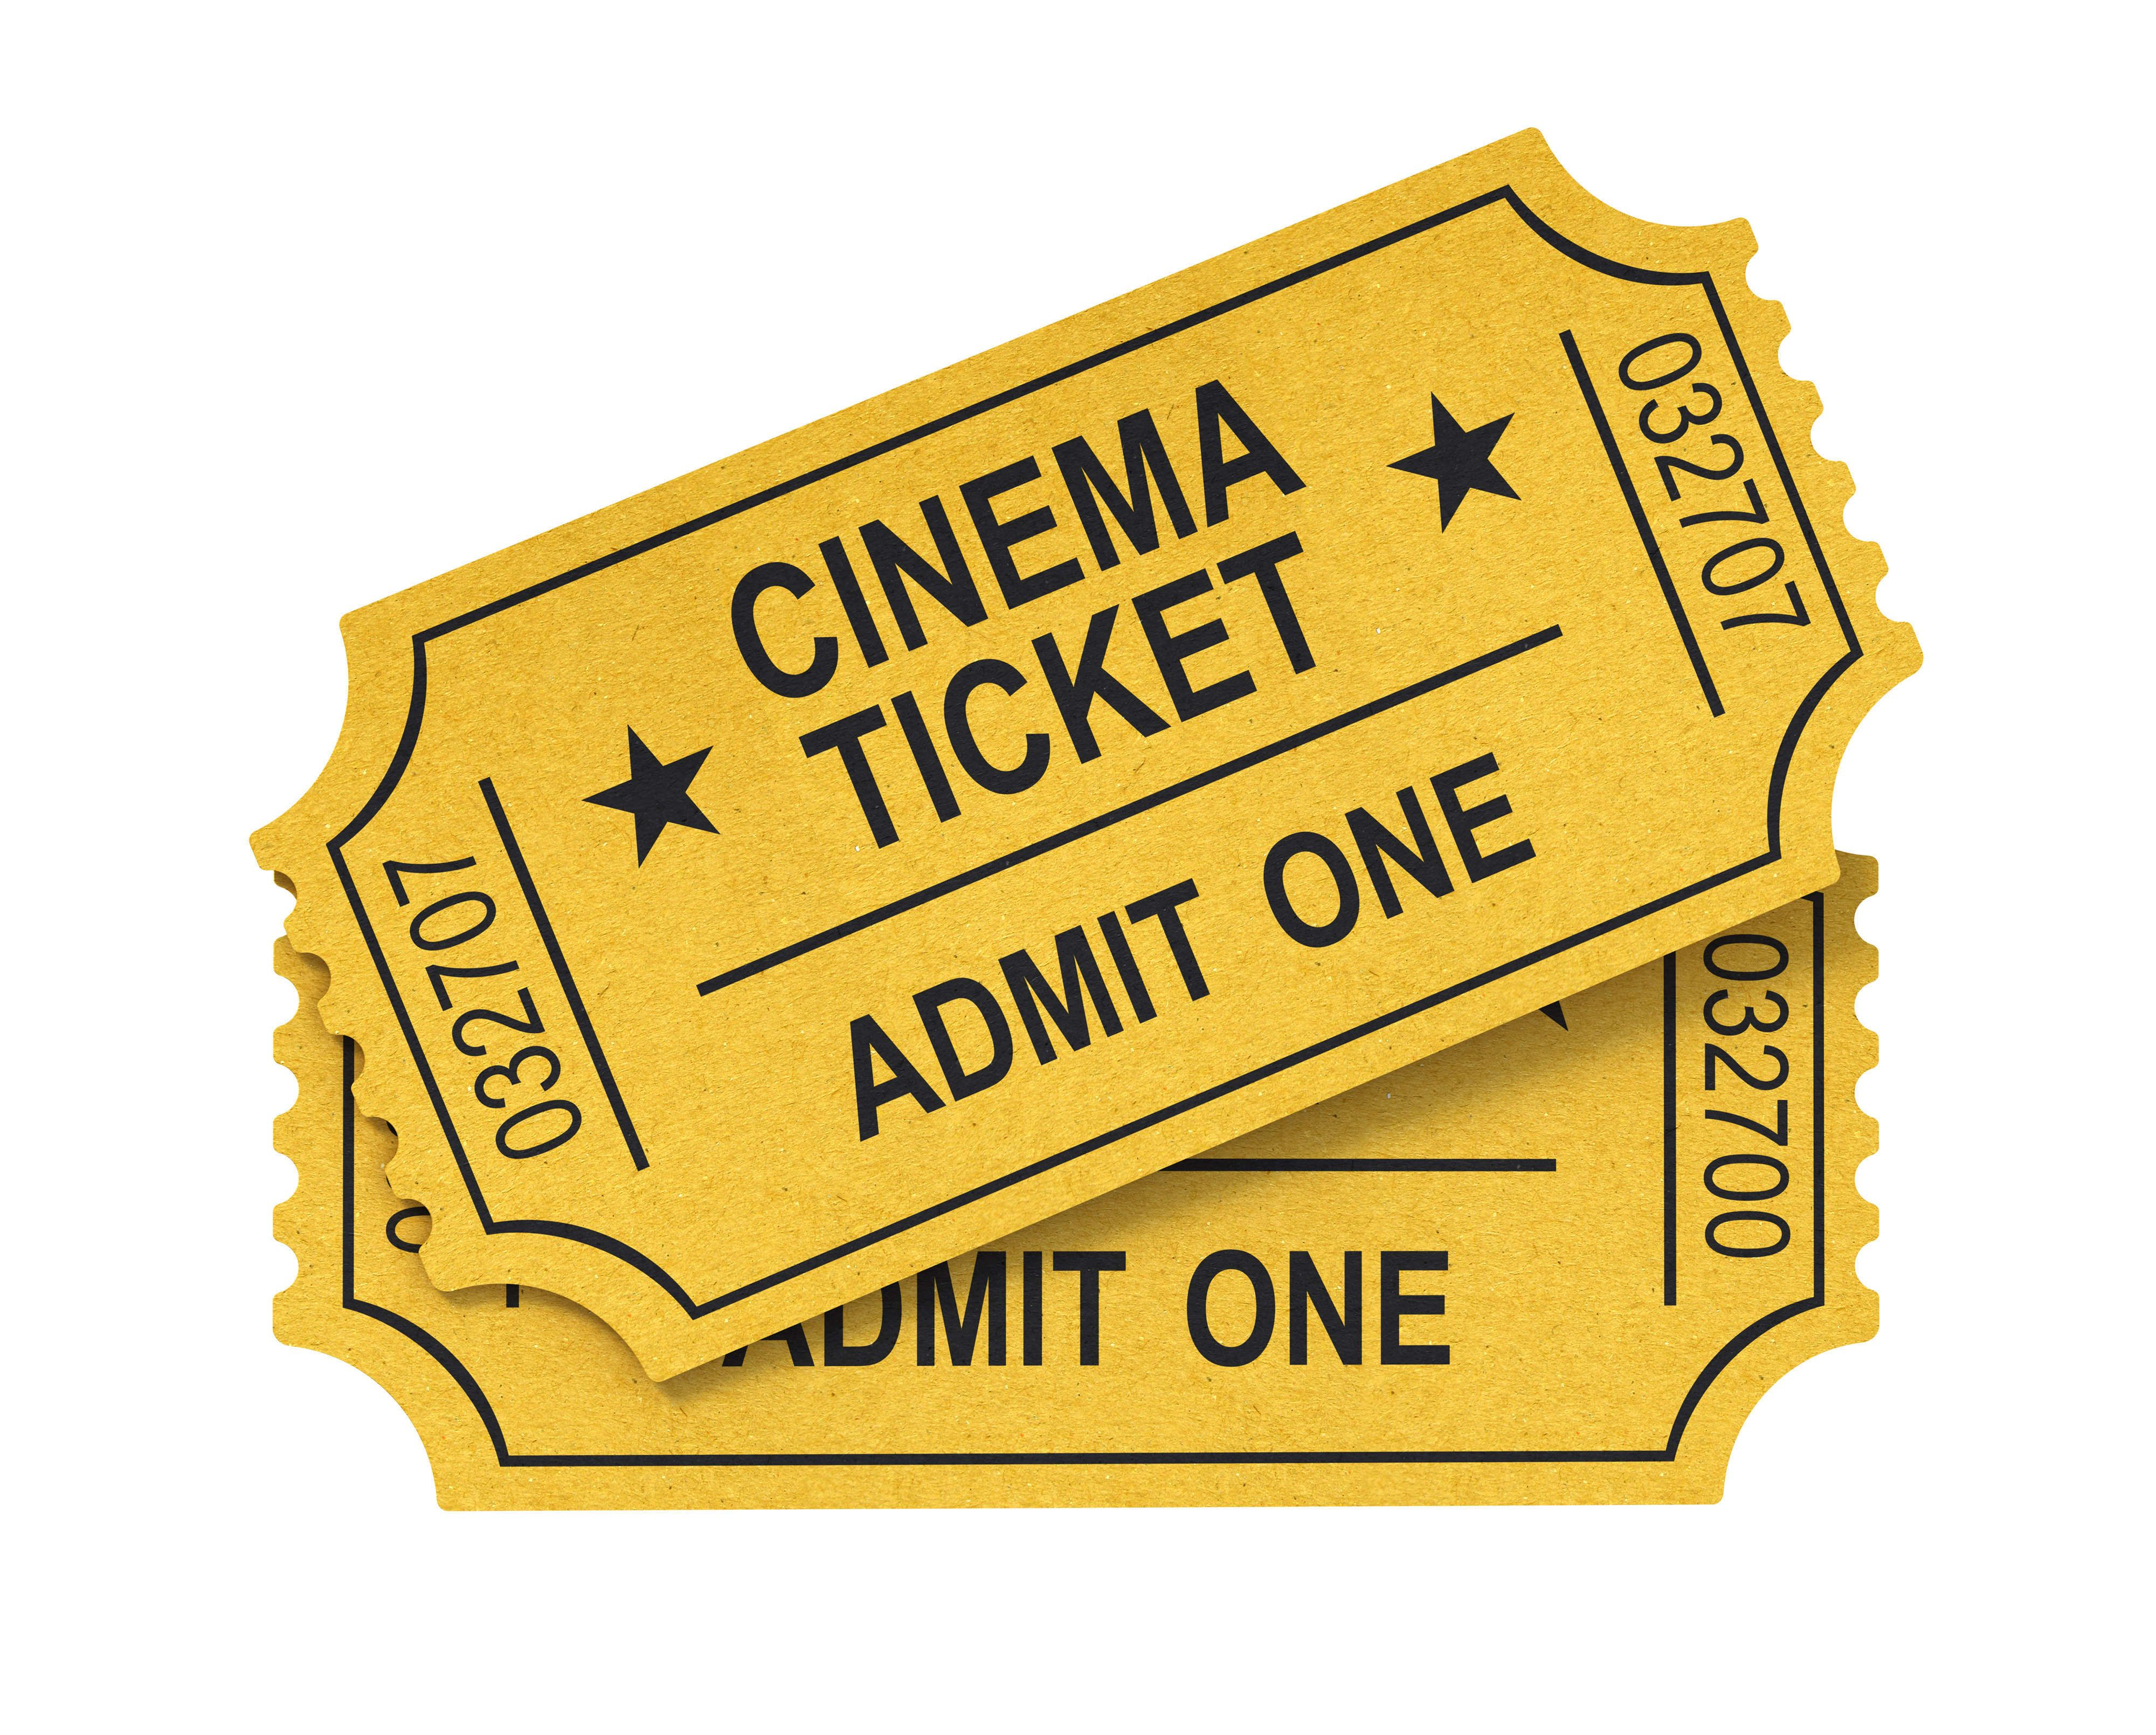 Now That They've Bought the Ticket | Cinema ticket, Movie tickets, Cinema